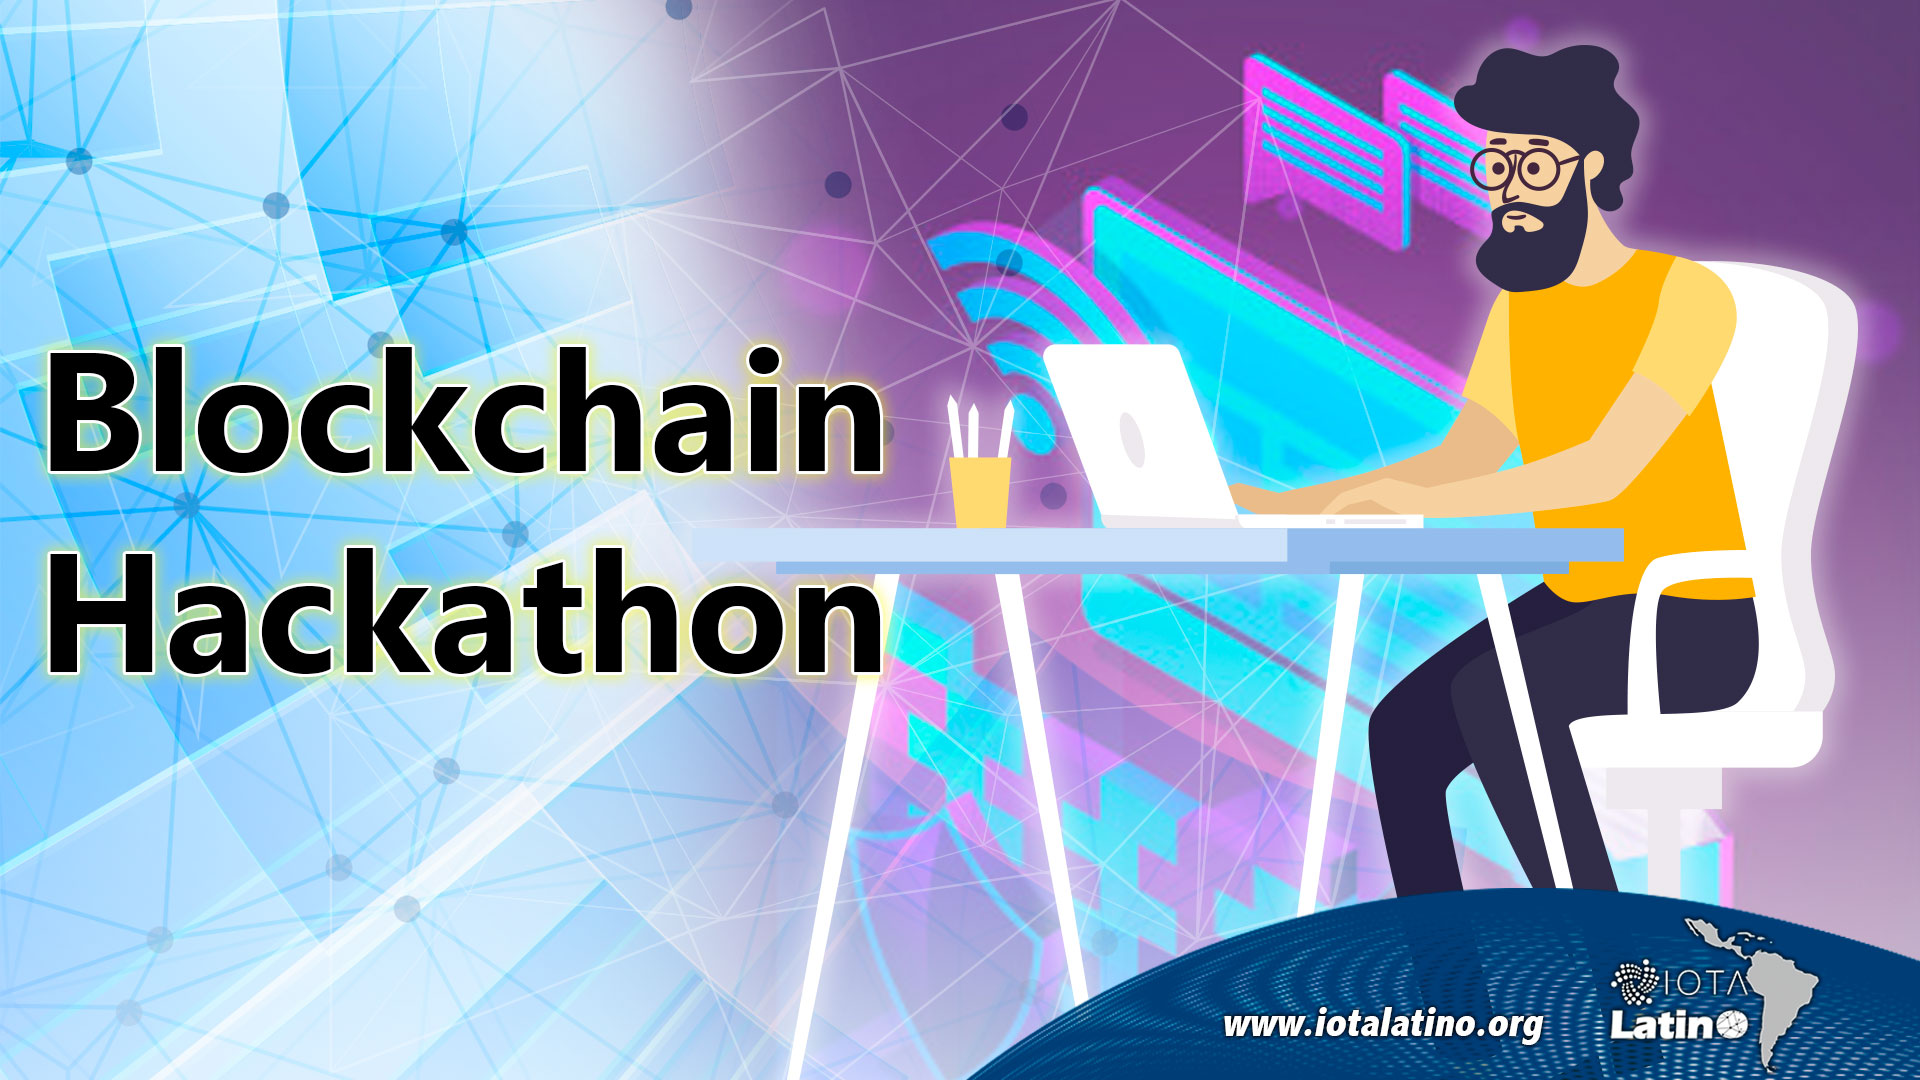 Criptominer - Blockchained Mobility Hackathon